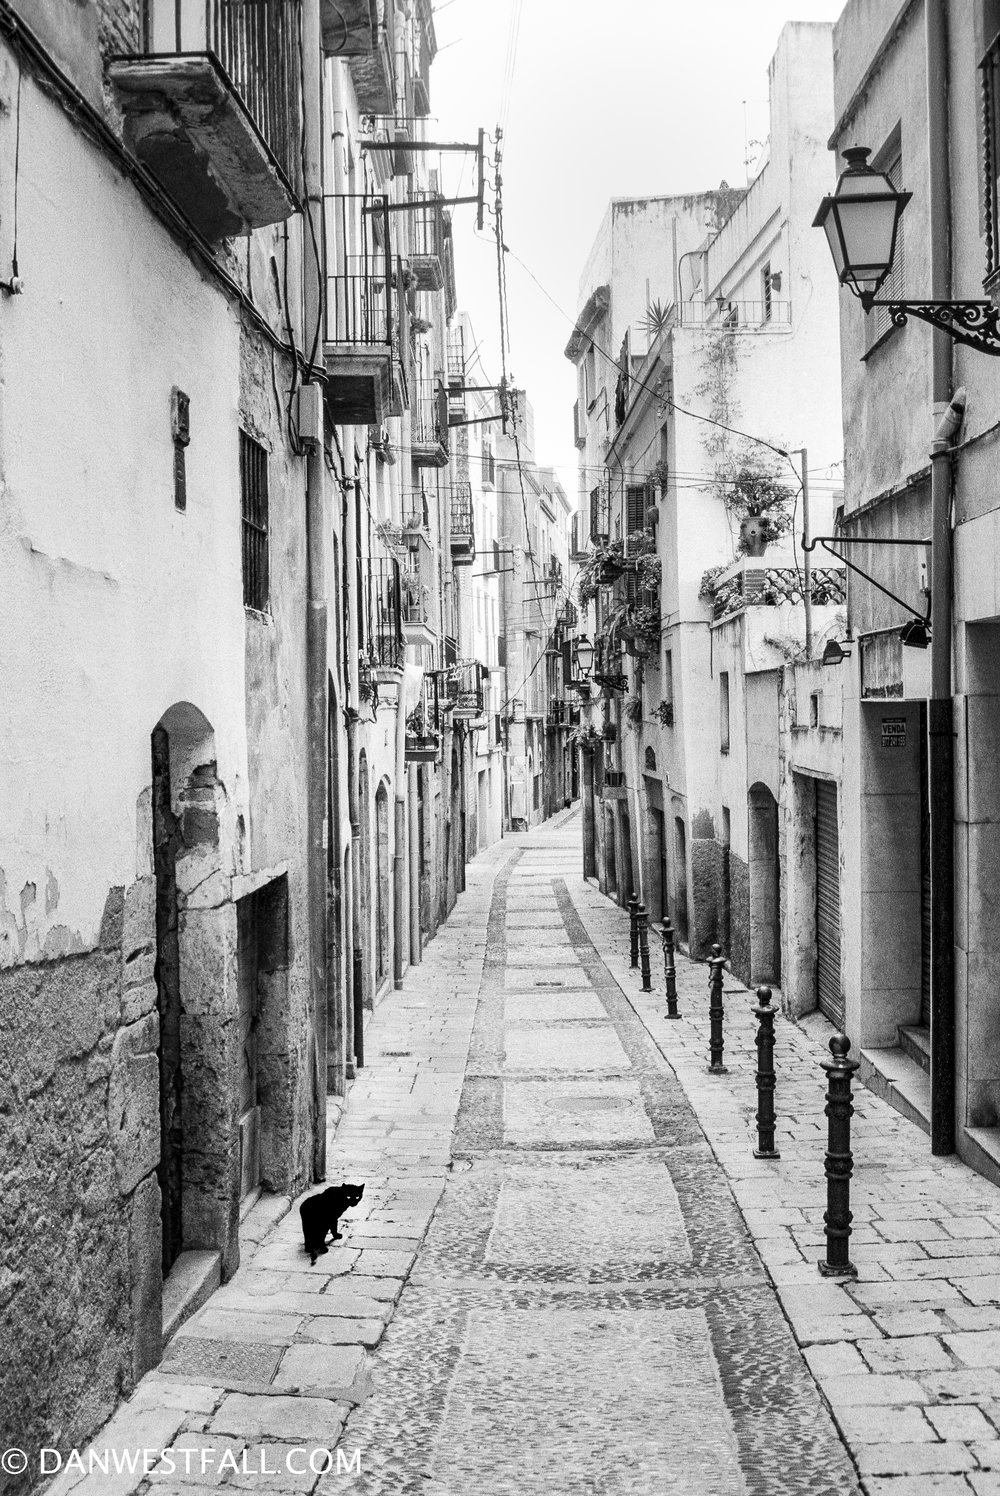 Alley Cat. Tarragona, Spain. #.702